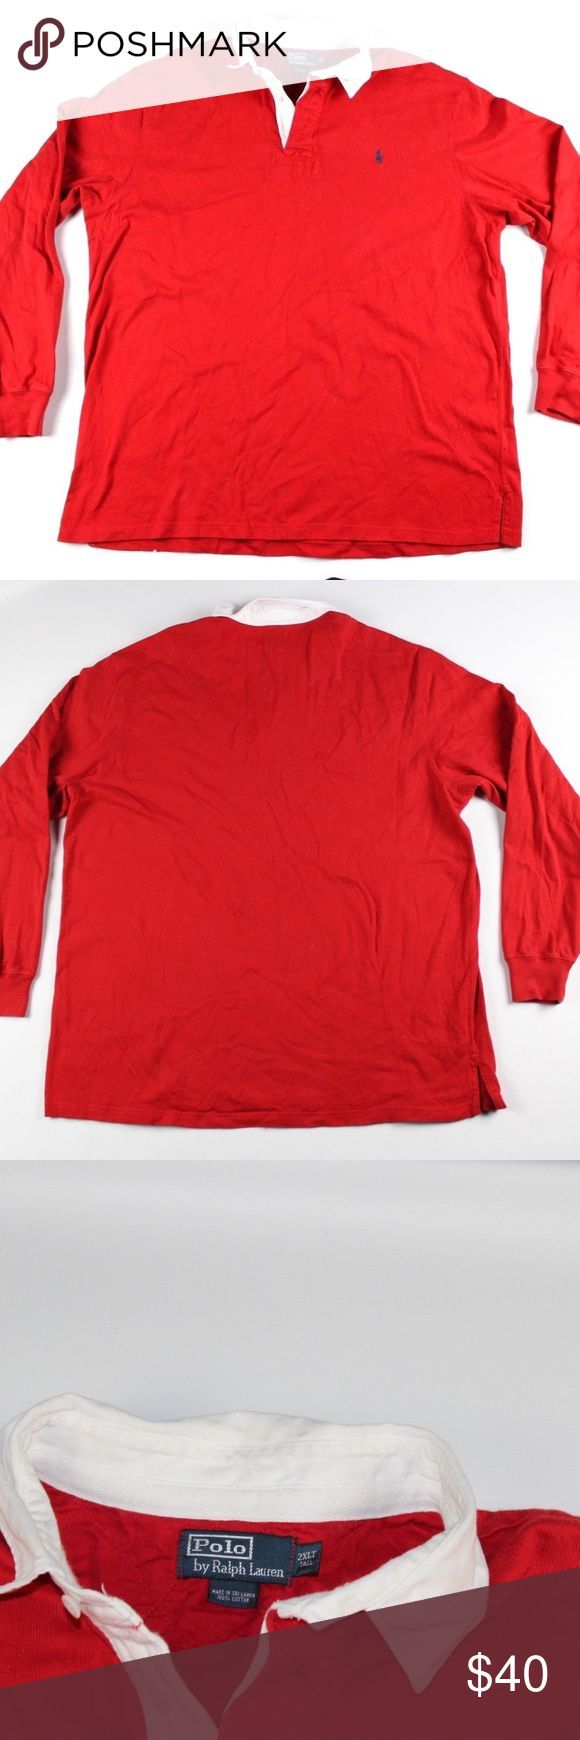 Polo Ralph Lauren Long Sleeve Rugby Shirt 2XL Tall Polo by Ralph Lauren Long Sleeve Rugby Shirt  Excellent shirt for a day out  Comes from a smoke-free household  The size is 2XL Tall and the measurements are 27 inches underarm to underarm and 33 inches shoulder to base  Red with a Blue Pony logo  Cotton  Check out my other items for sale!  L3 Polo by Ralph Lauren Shirts Polos